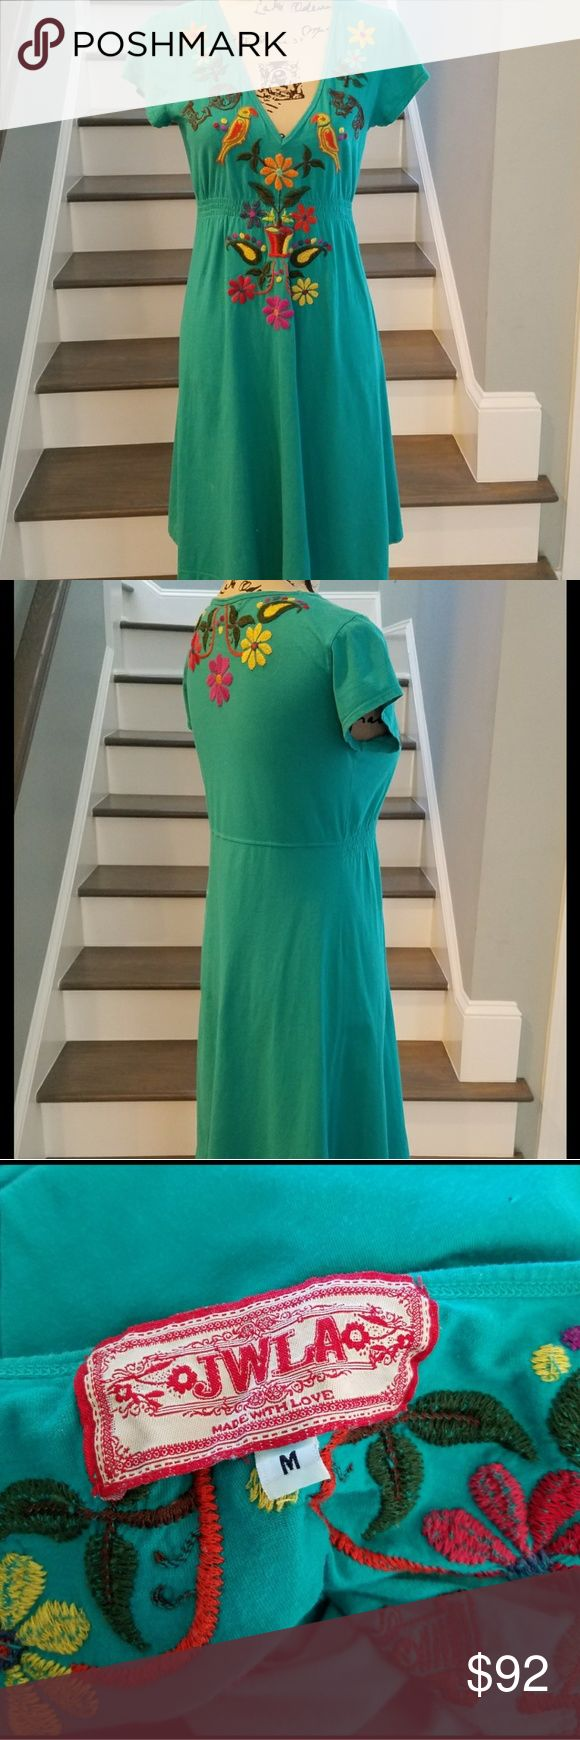 """Johnny Was(LA) pullover tunic/dress Beautiful teal colored dress with multicolored embroidered flowers and birds. 100% cotton. Measured lying flat. Middle of back neckline to hem 37"""". Armpit to armpit 17.5-18"""". Waist 15"""". Elastic under empire waist. V neck. Small cap sleeves. Mint condition. Smoke free/pet free home. No trades. I only deal through Poshmark. Johnny Was  (JWLA) Dresses"""